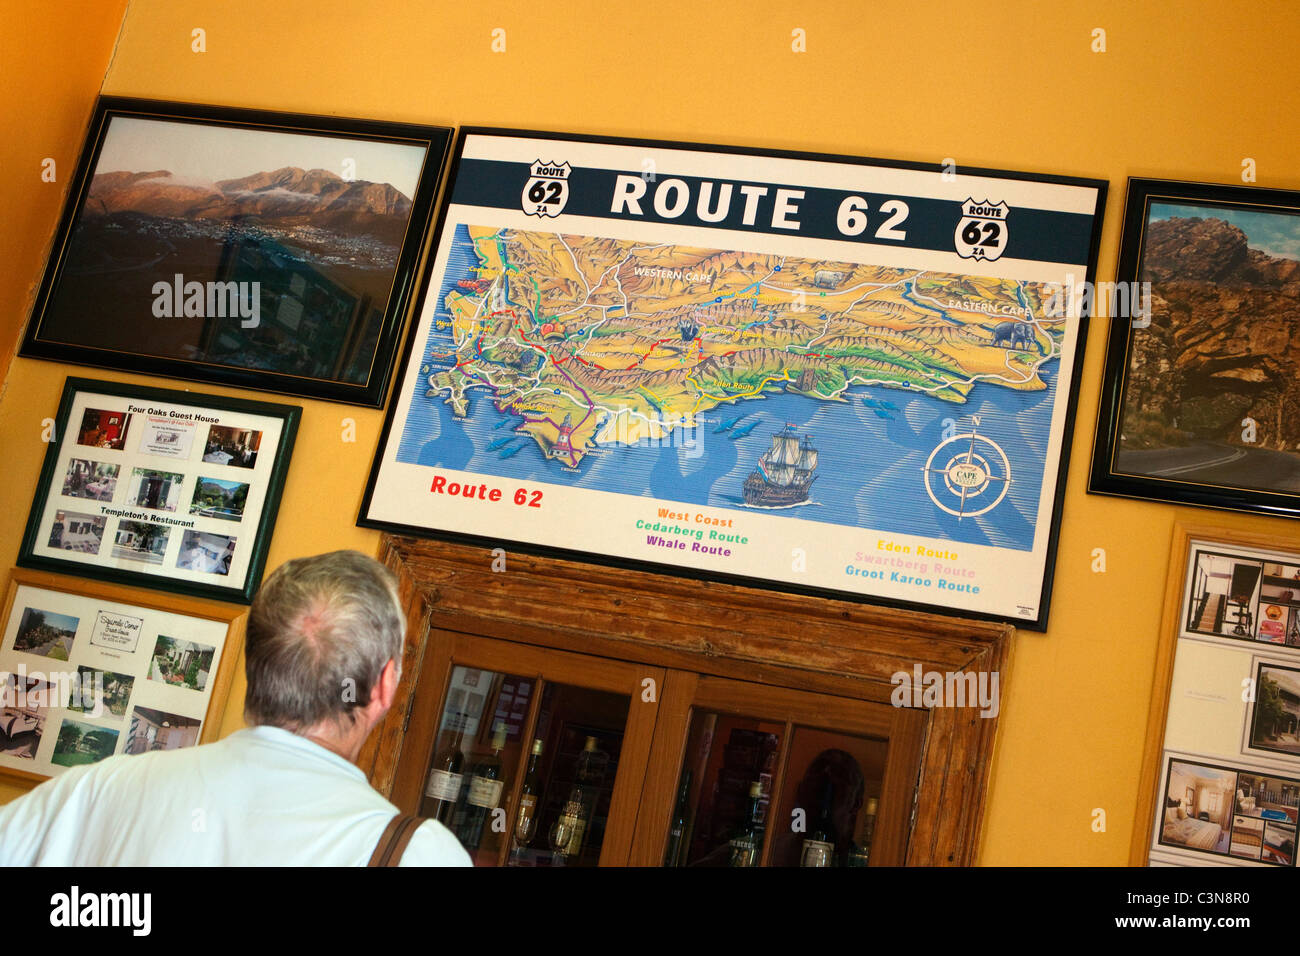 Map Of Route 62 South Africa.South Africa Western Cape Montagu Map Of Route 62 In Tourist